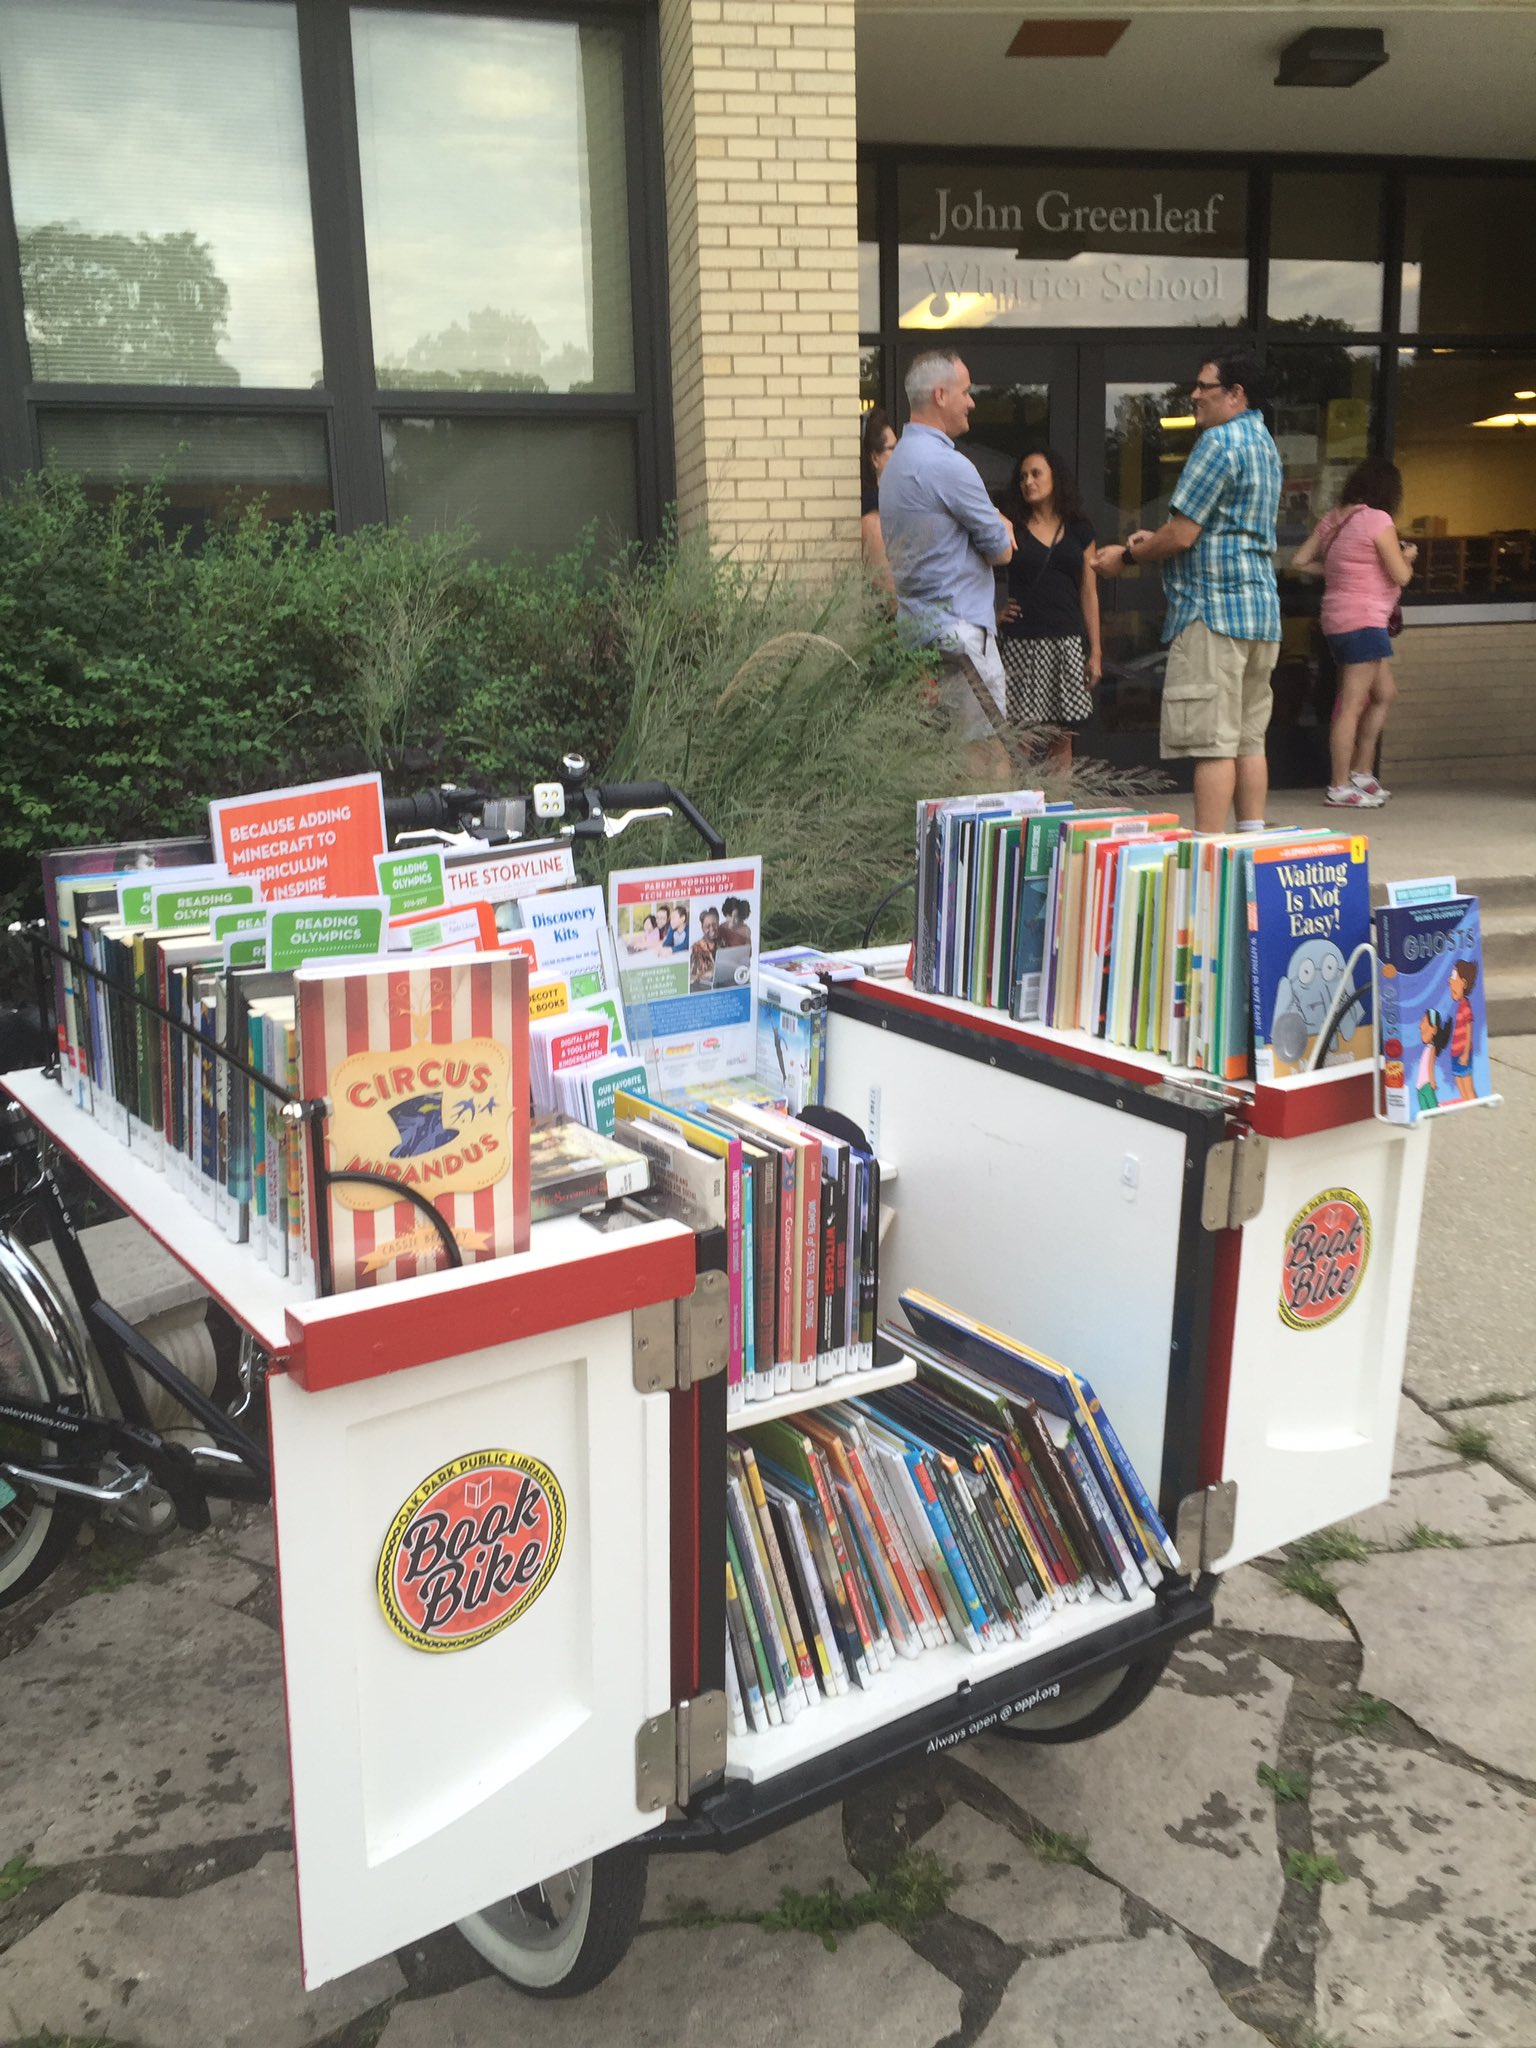 All about breaking down barriers + being where people are this week... like at curriculum night! #GetOTL #OPbookbike https://t.co/DFtI2o6aFZ